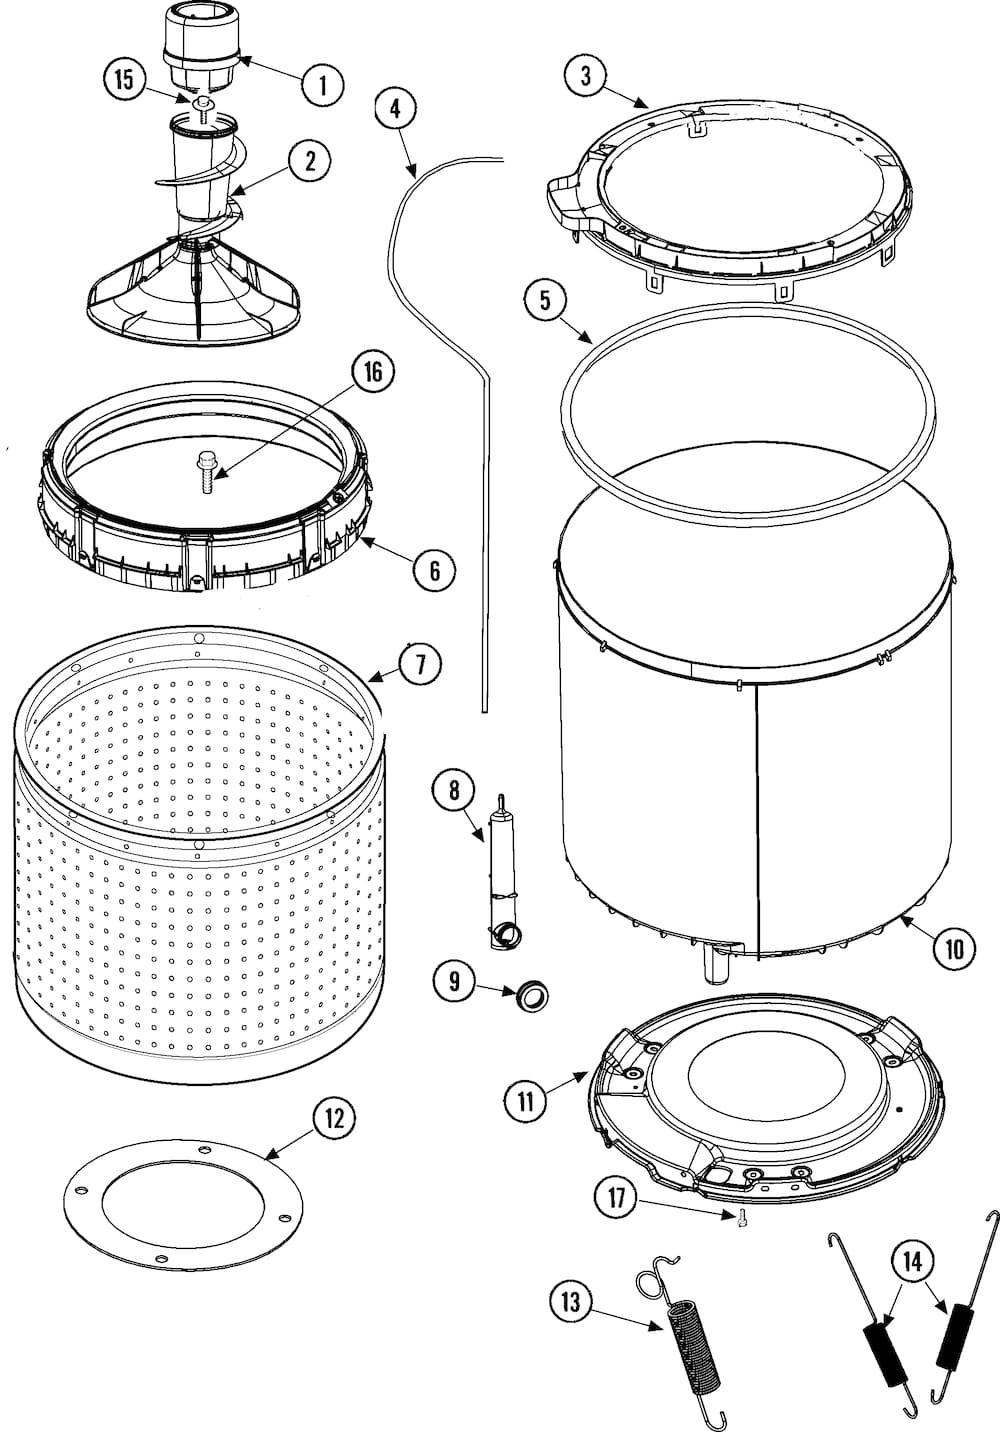 maytag front load washer parts diagram